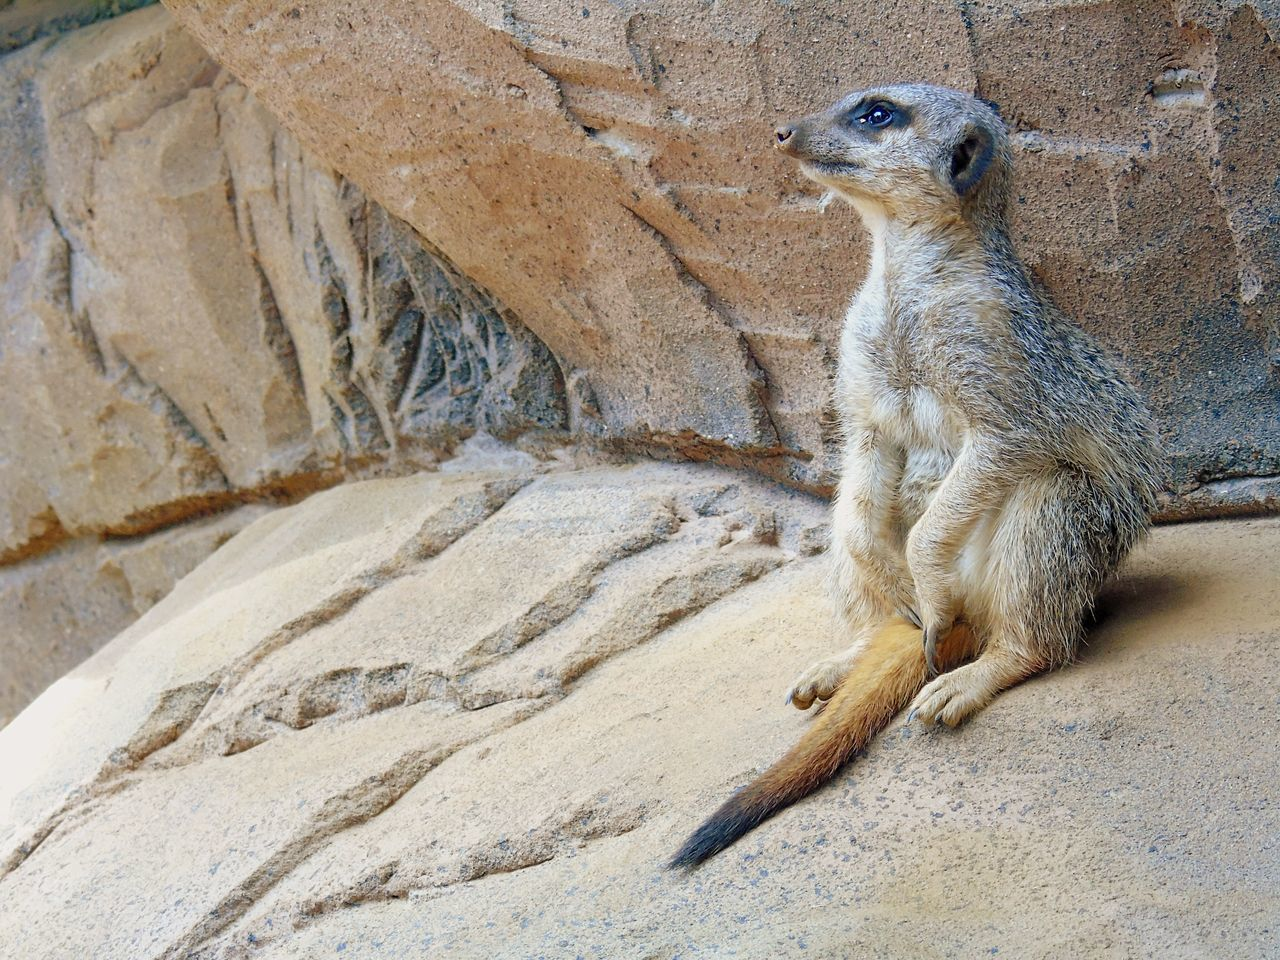 Animal Themes Meerkat Animals In The Wild One Animal Animal Wildlife Mammal Zoo Outdoors No People Nature Day